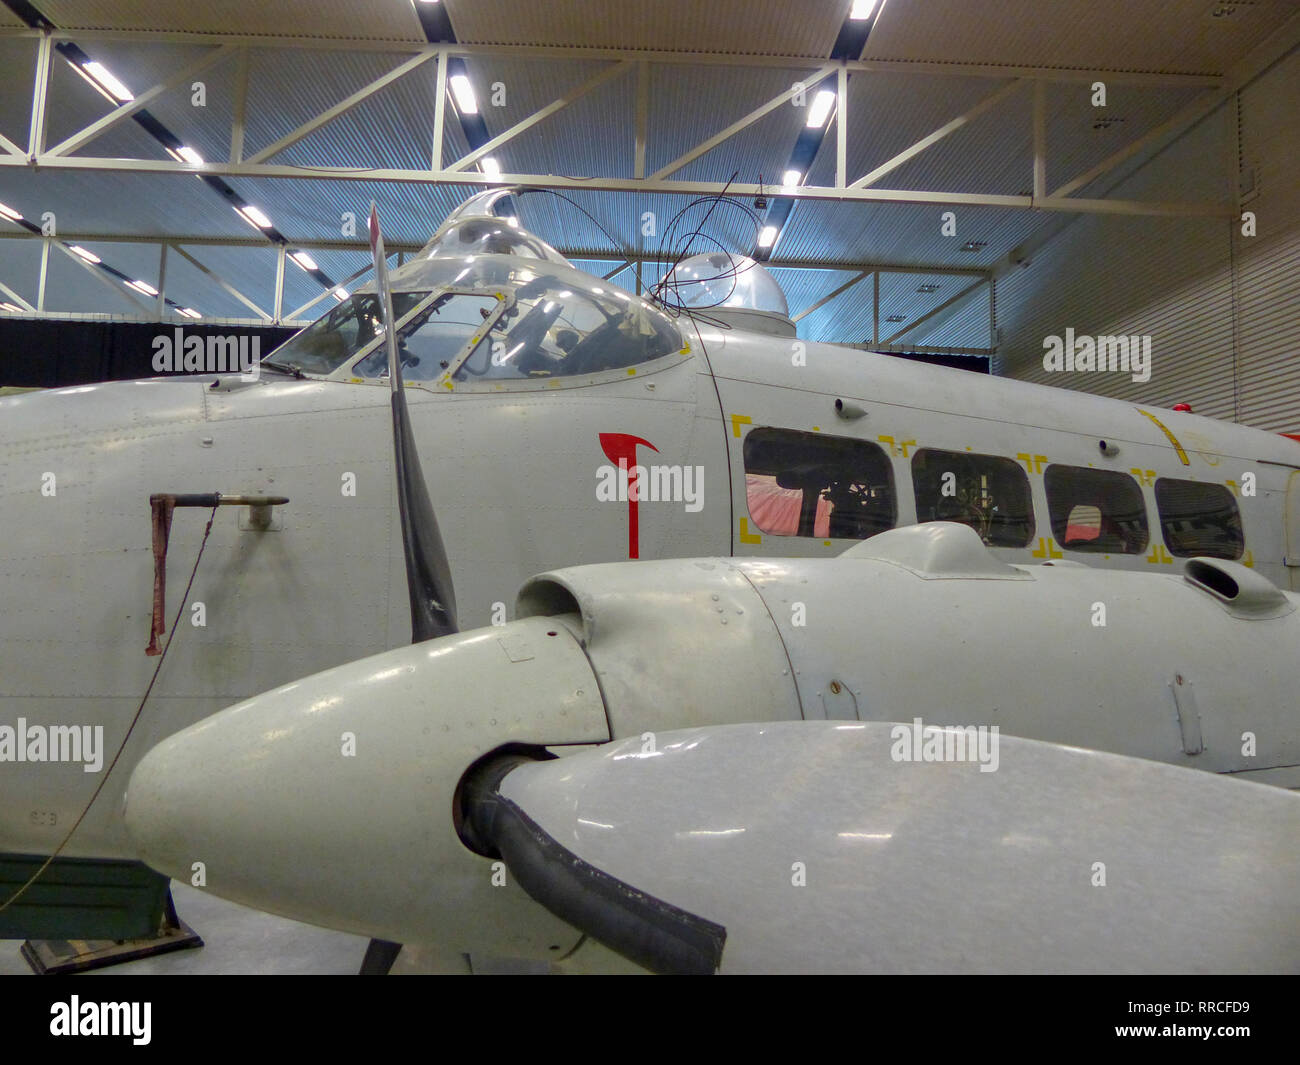 Omaka Aviation Heritage Centre. The Omaka Aviation Heritage Centre is an aviation museum located at the Omaka Air Field, 5 km from the centre of Blenh - Stock Image